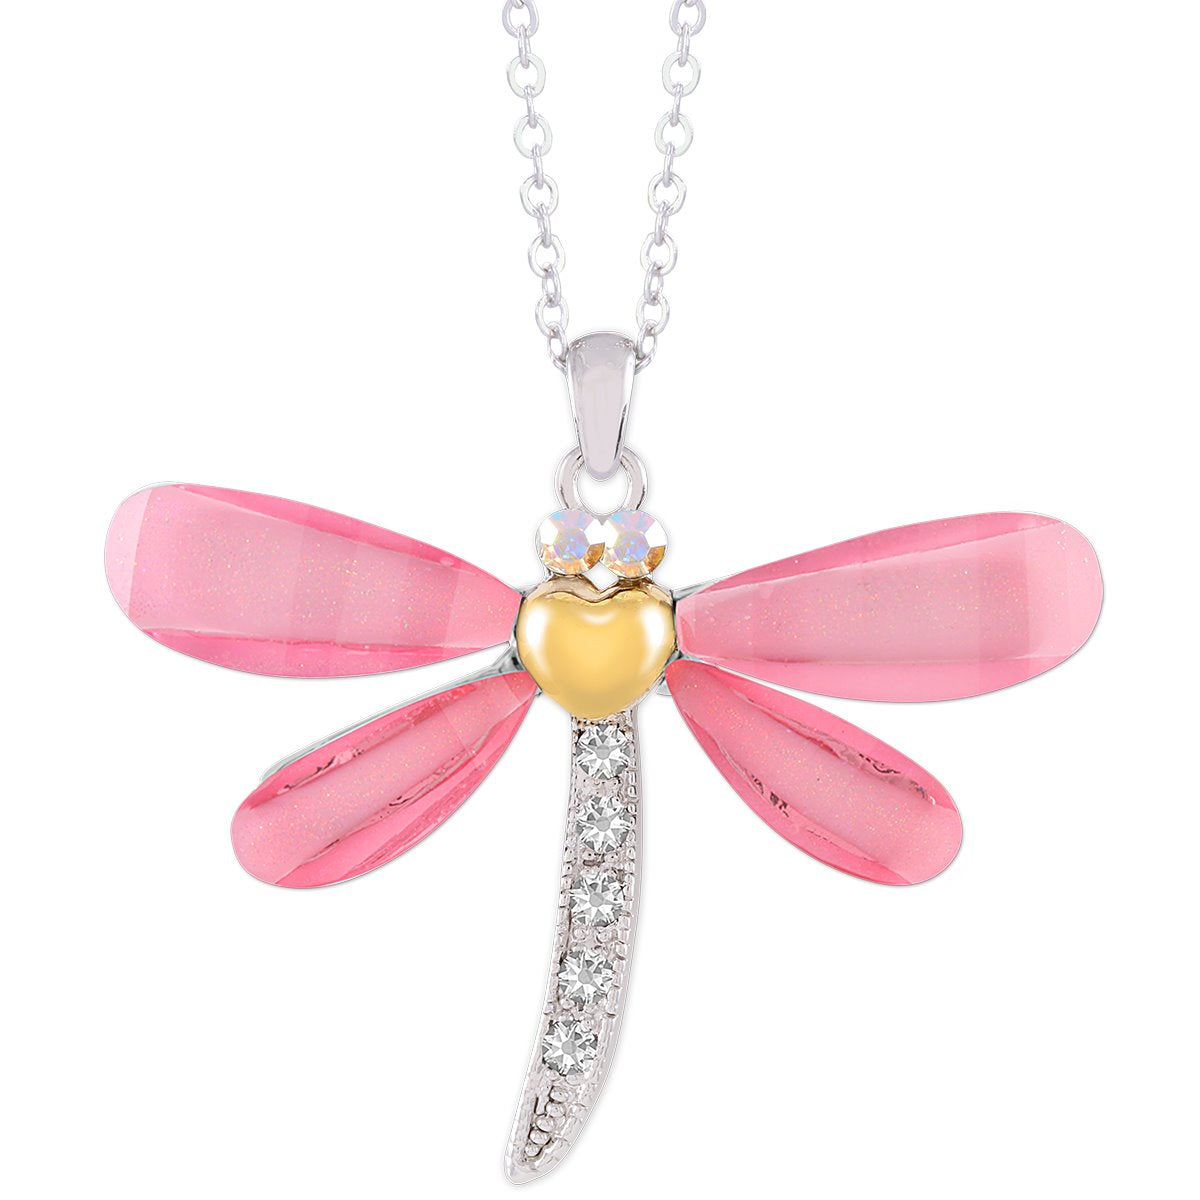 Classic Dragonfly Pendant PENDANT - FOREVER - VOIAGE ANIMALS - CRYSTAL forevercrystals